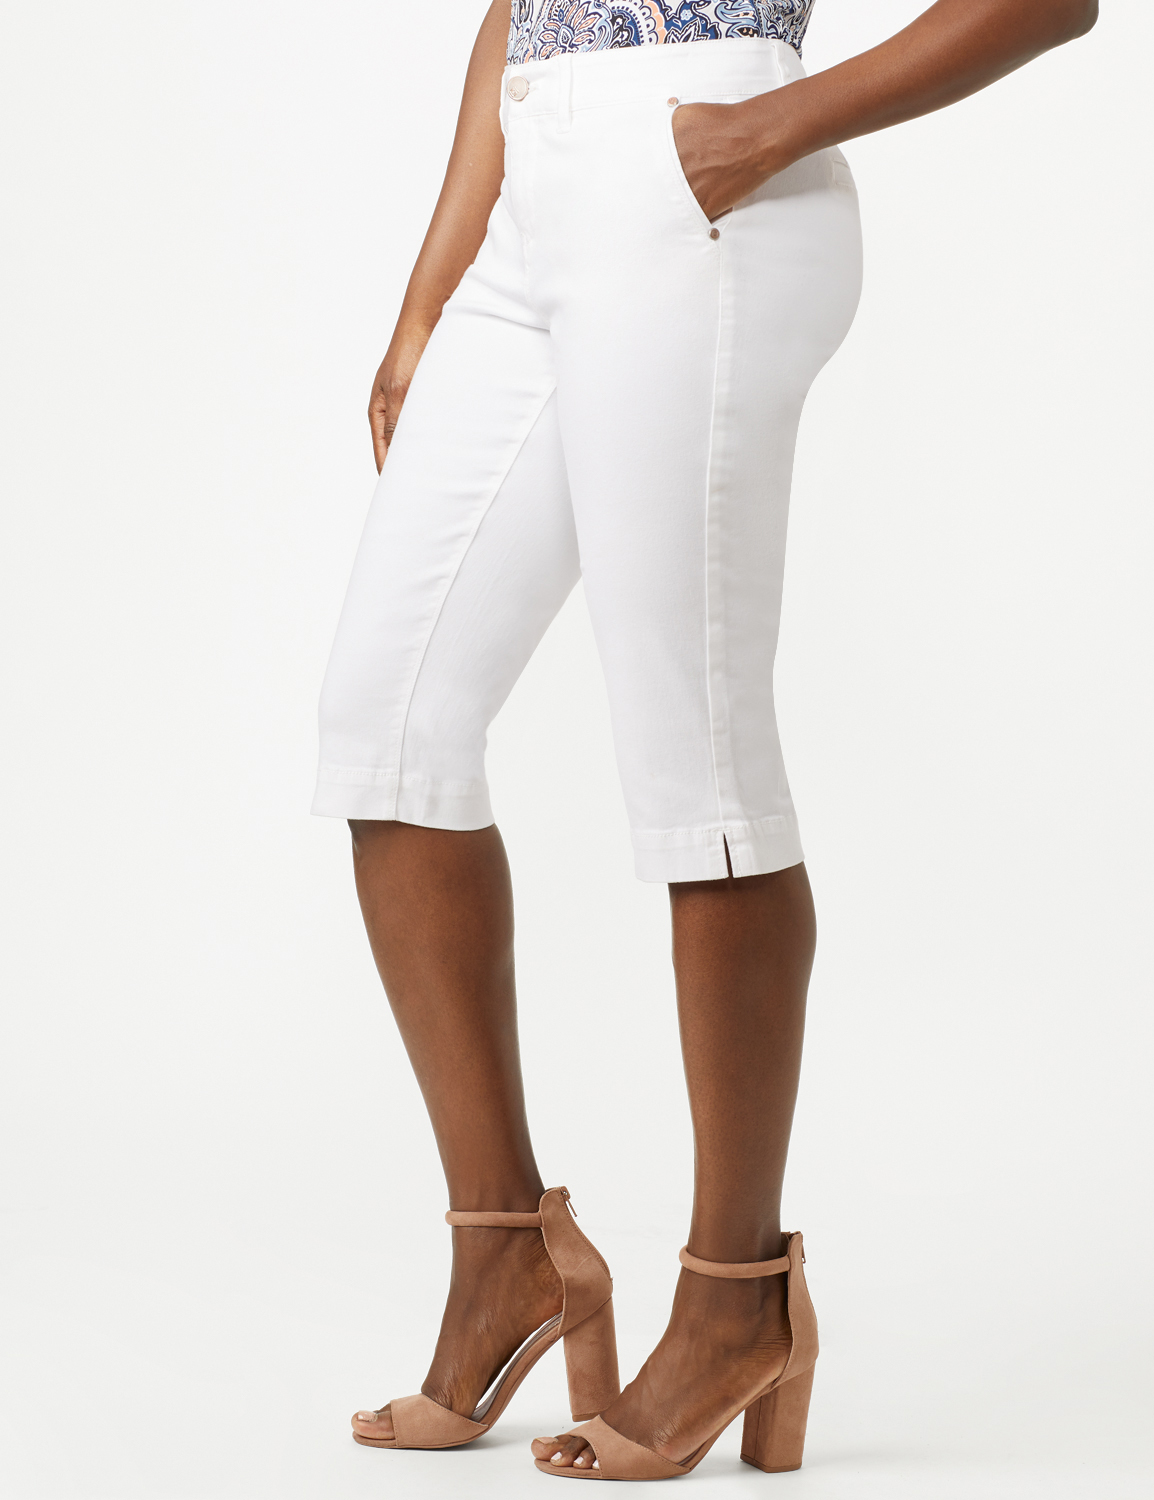 Mid Rise Skinny Petal Pusher With Goddess Fit Solutions -White - Front